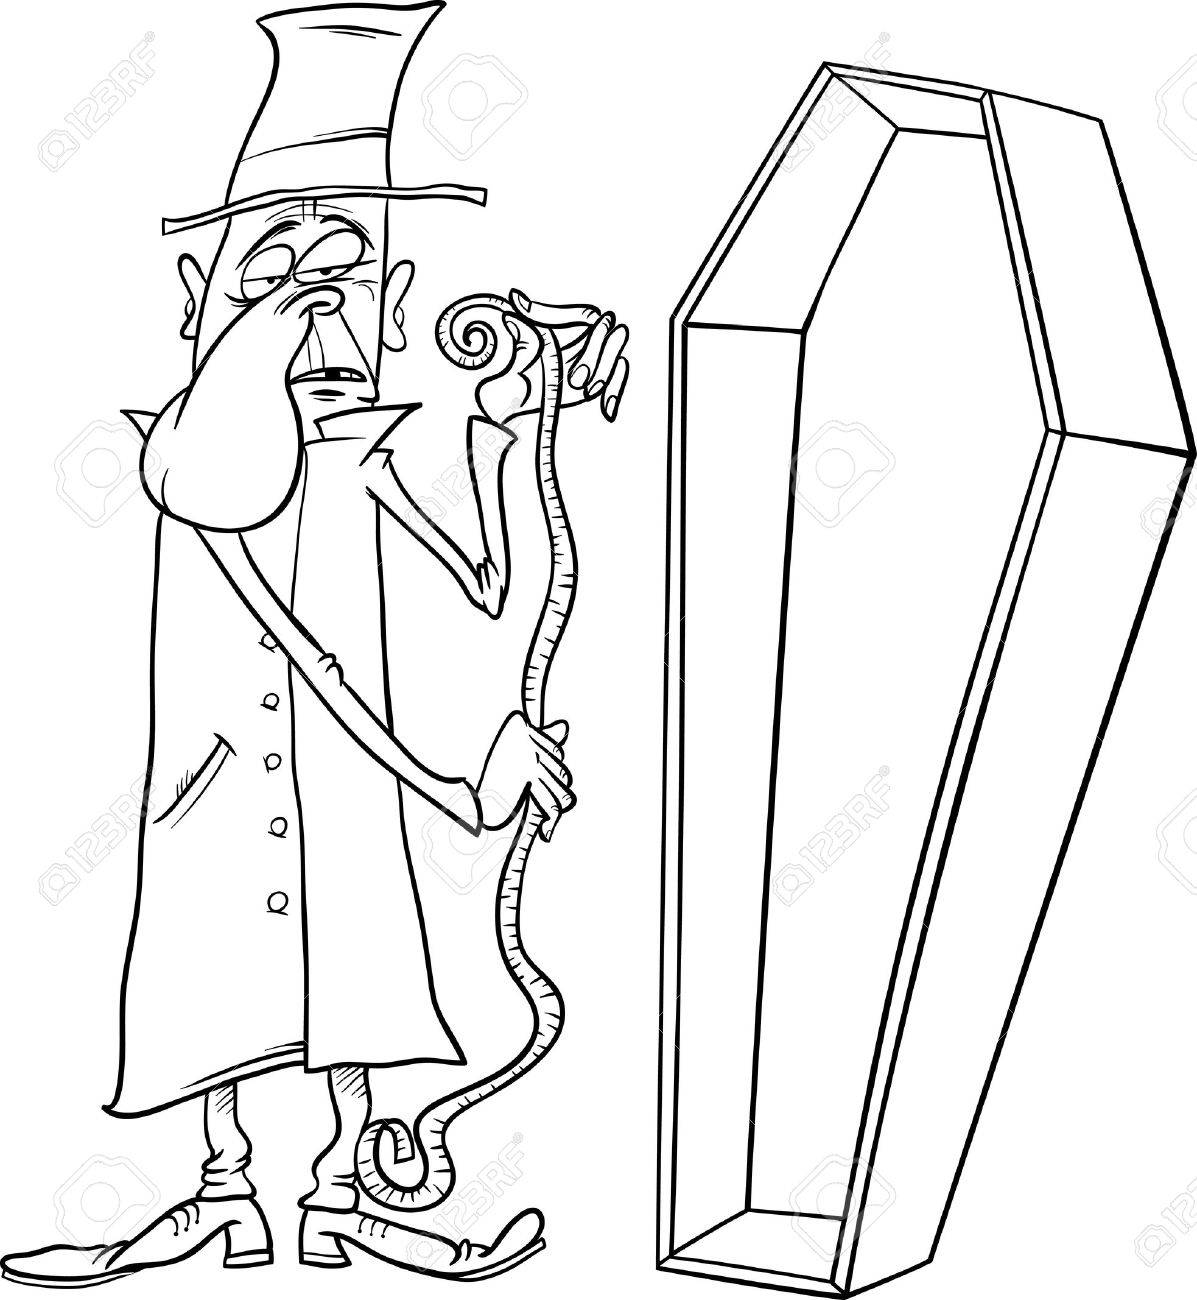 black and white cartoon illustration of undertaker with centimeter